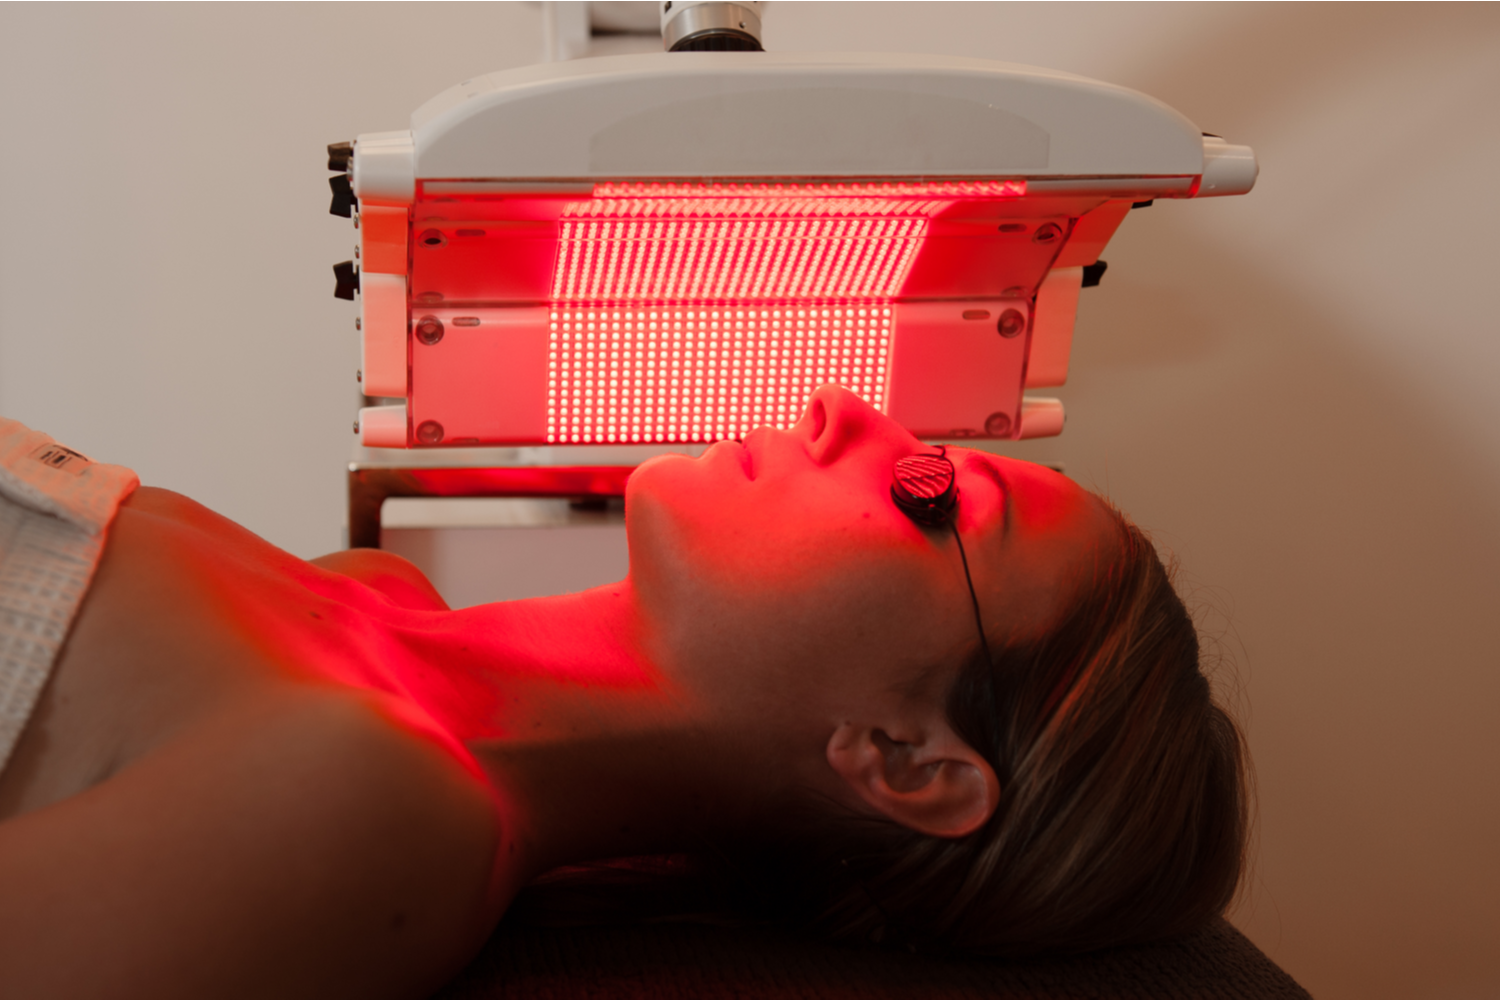 How to Maximize Weight Loss Results With Red Light Therapy